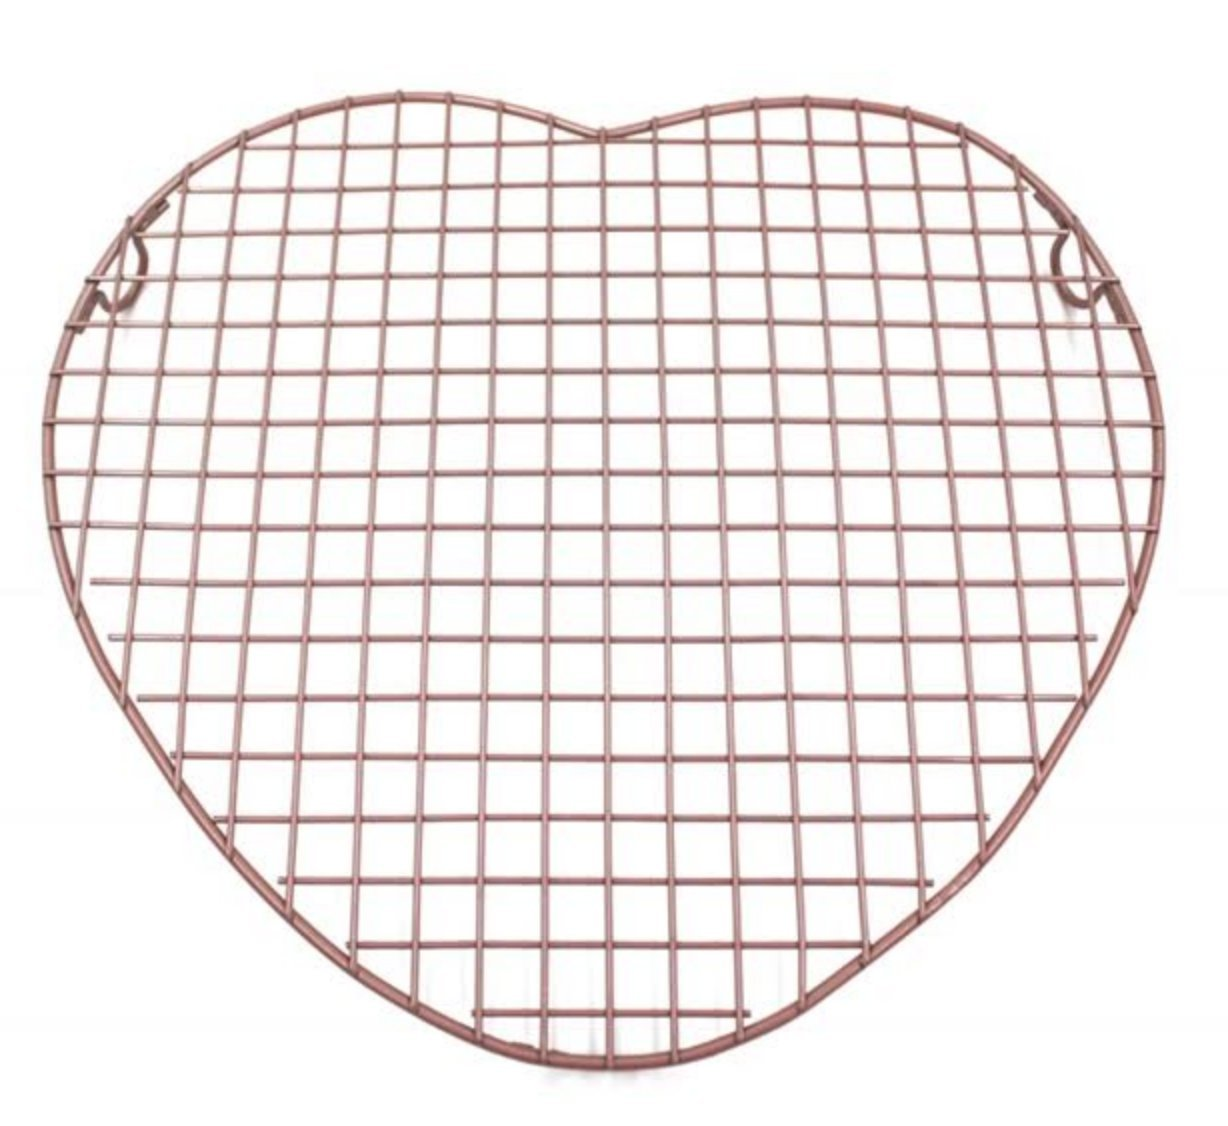 American Confections Heart Baking Cookie Cooling Rack